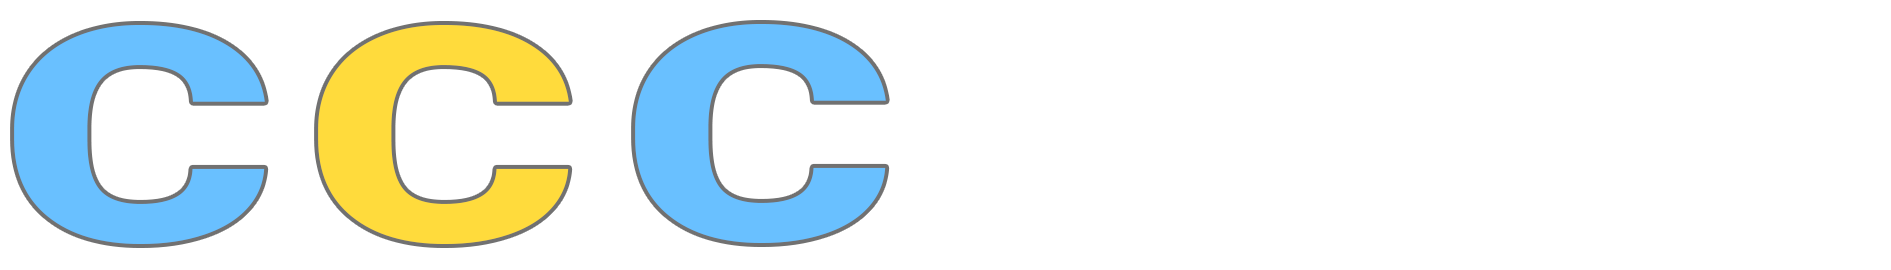 CCC Cleaning Specialists logo